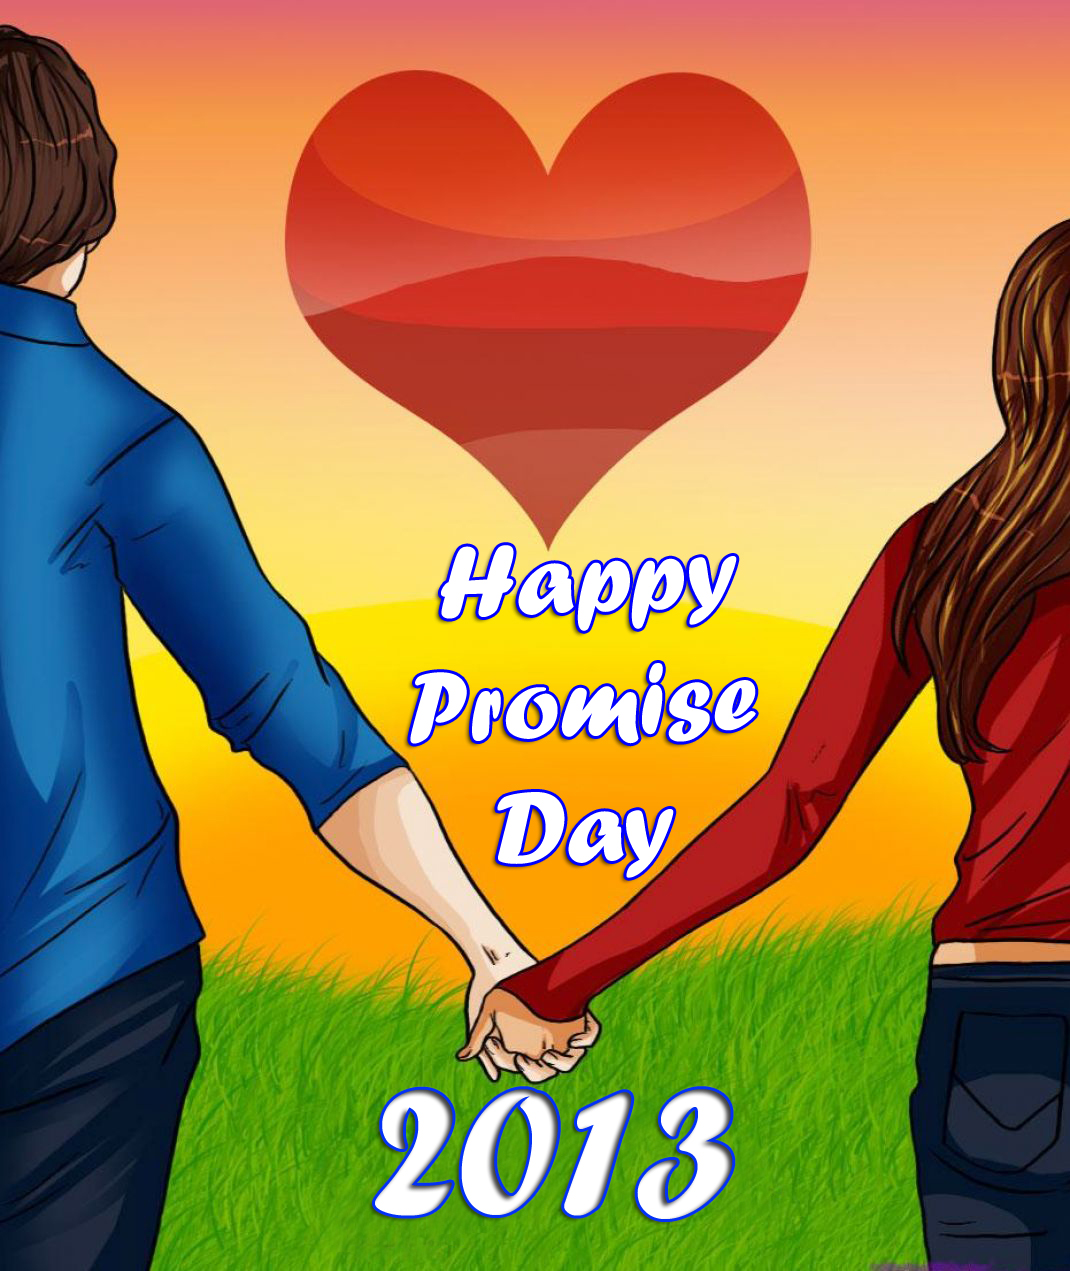 http://2.bp.blogspot.com/-Ofdbk66AFHU/UQKBu8nlmvI/AAAAAAAADM0/N8WVGPa2GwA/s1600/Happy%20Promise%20Day%20Wallpapers%20Images%20greetings%202013.jpg